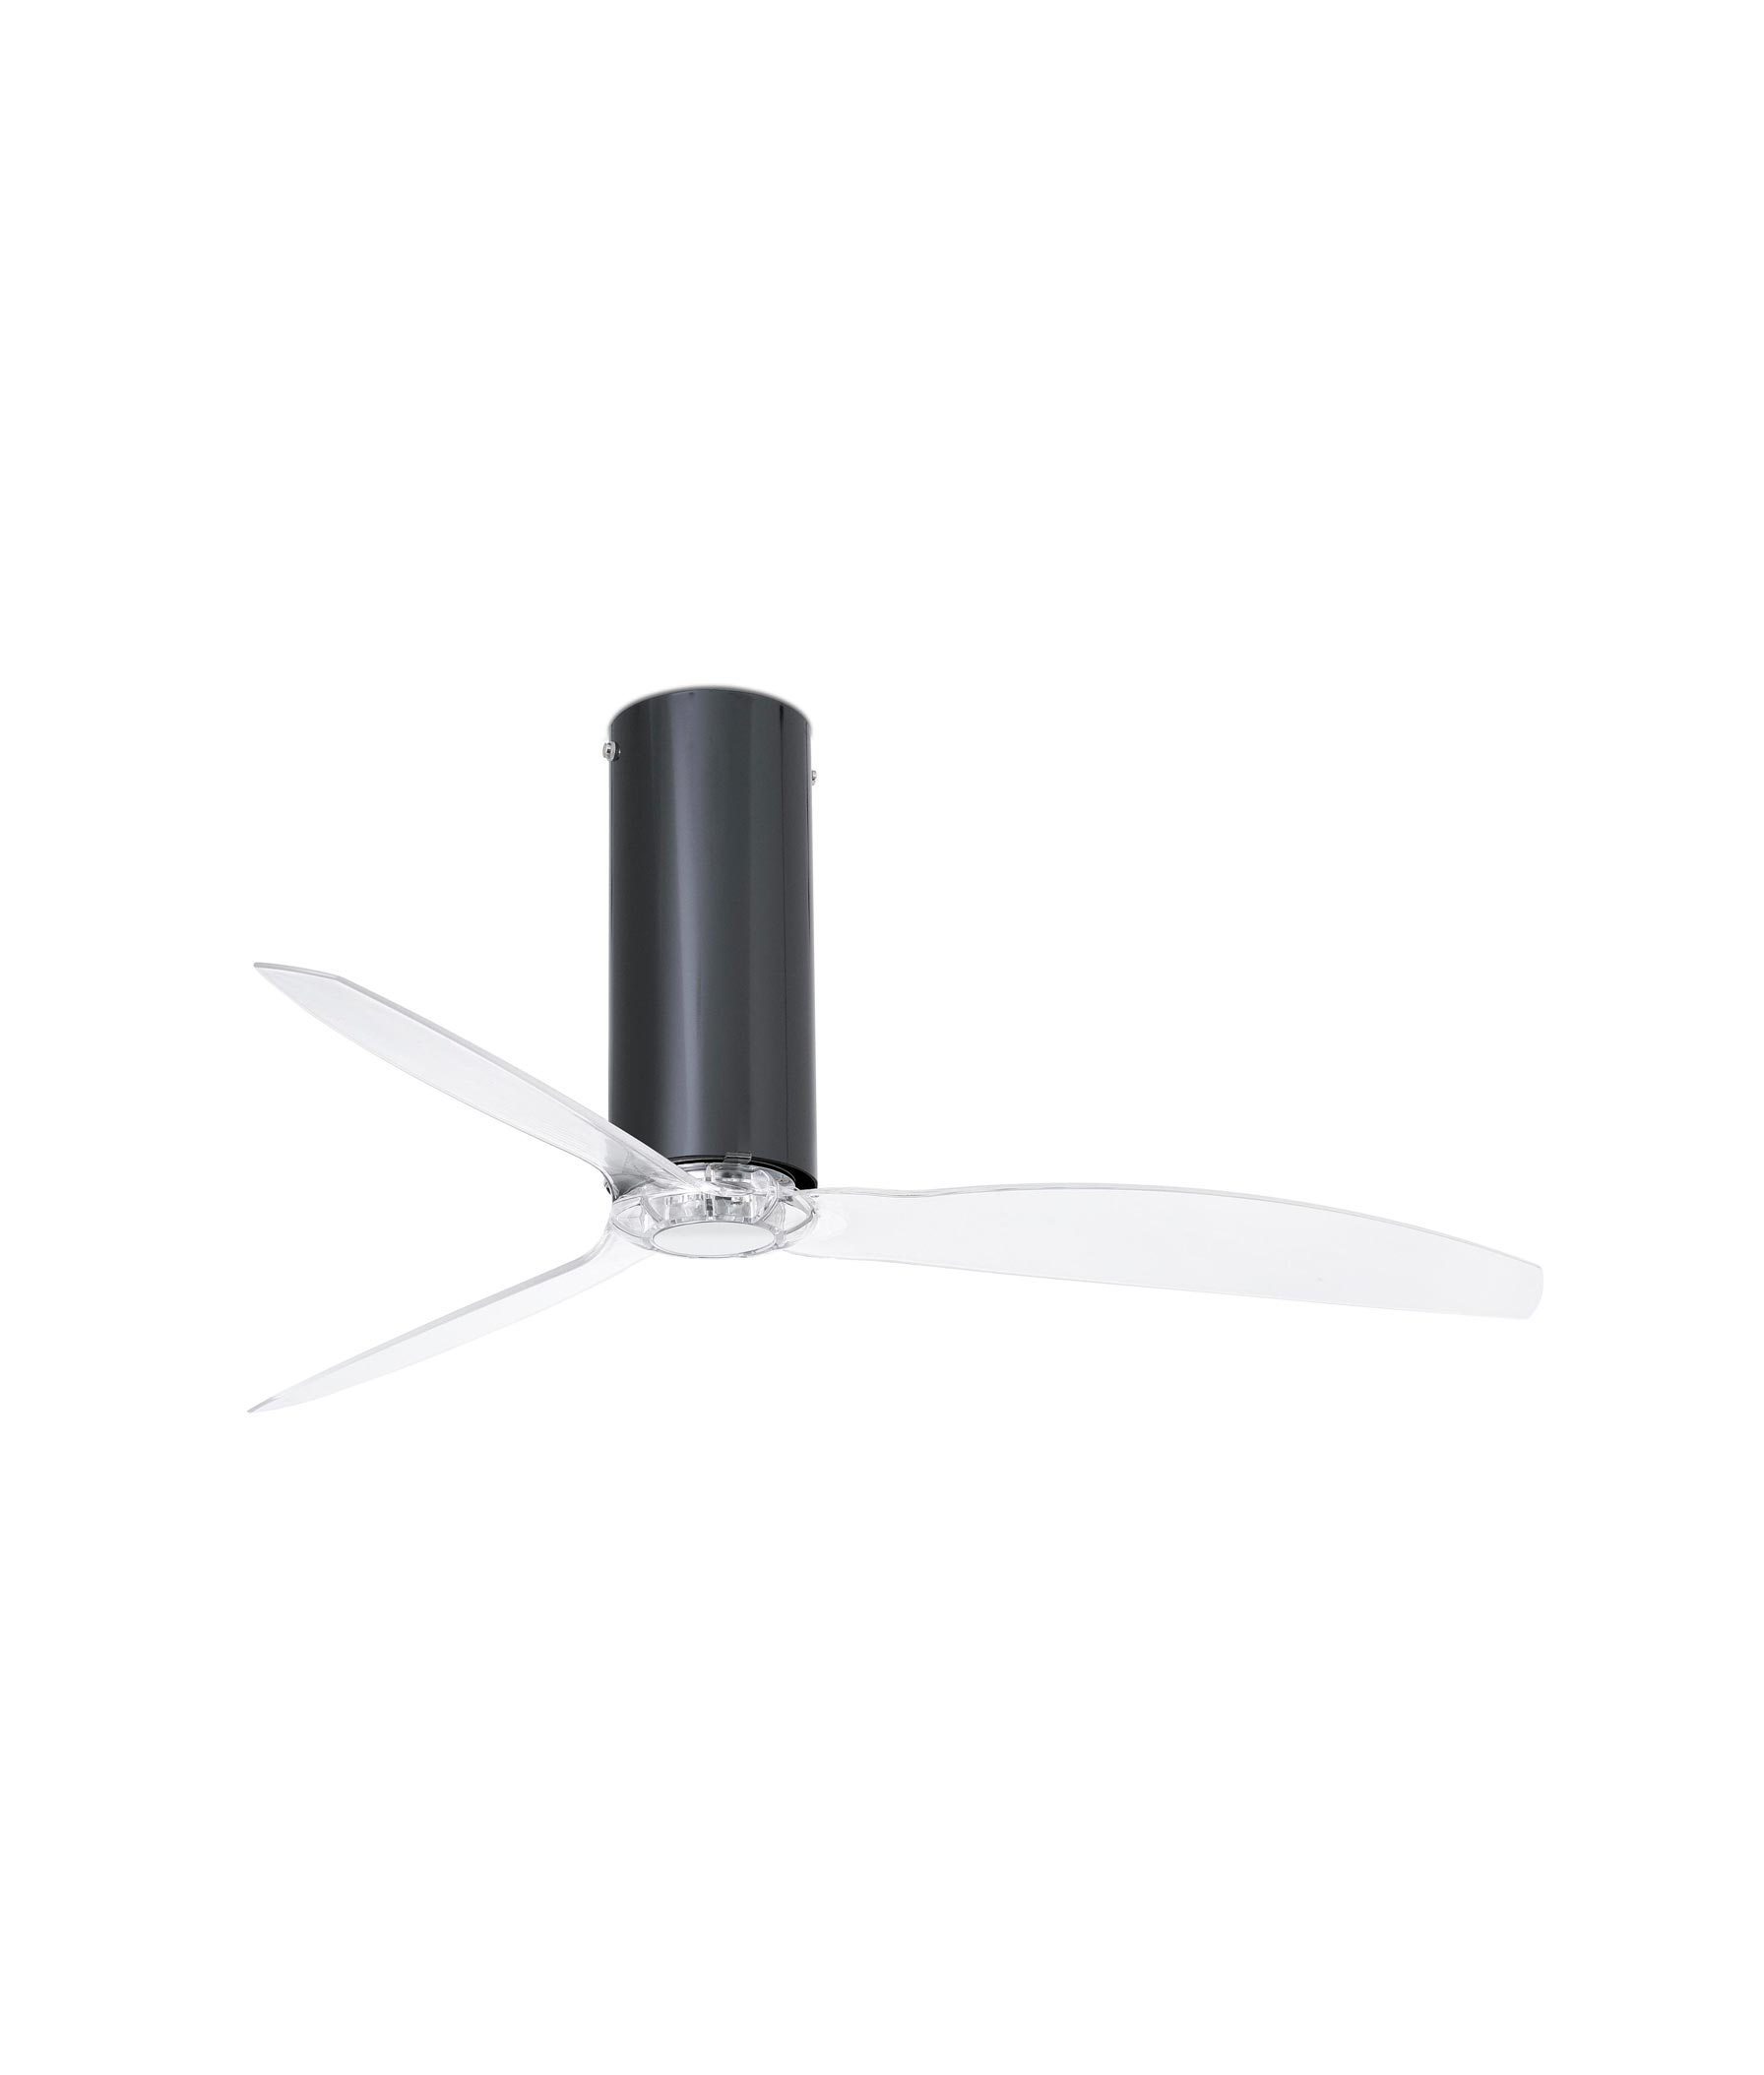 Ventilador negro brillo TUBE FAN